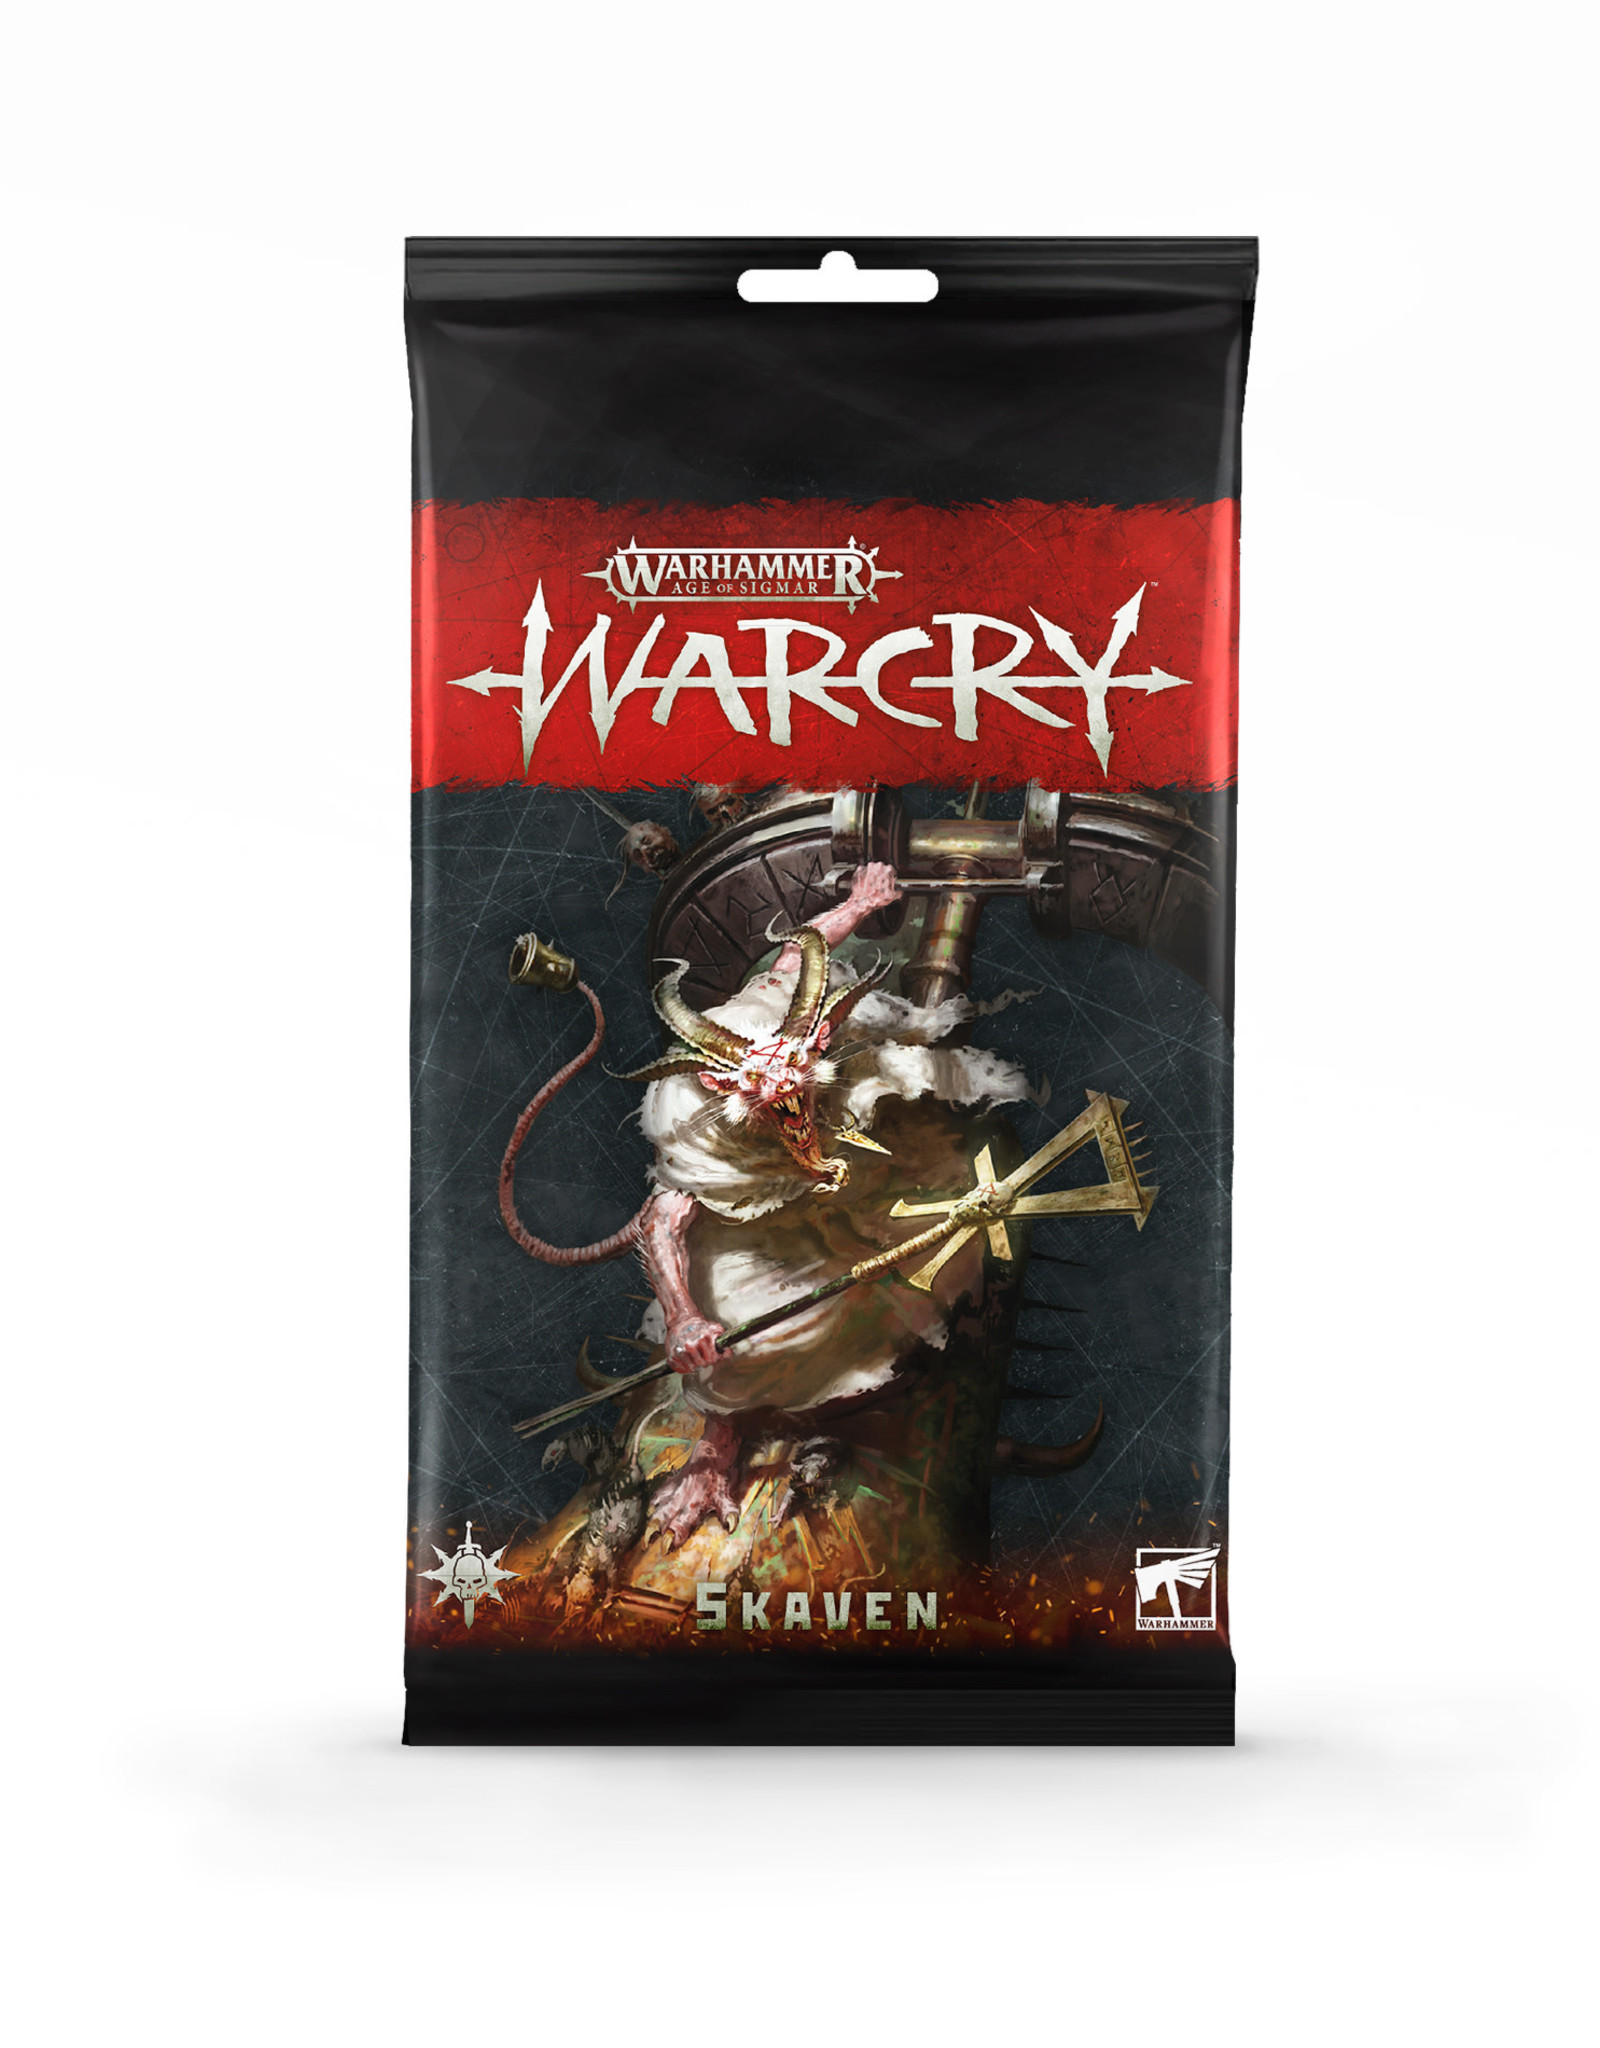 WarCry Warcry: Skaven Card Pack